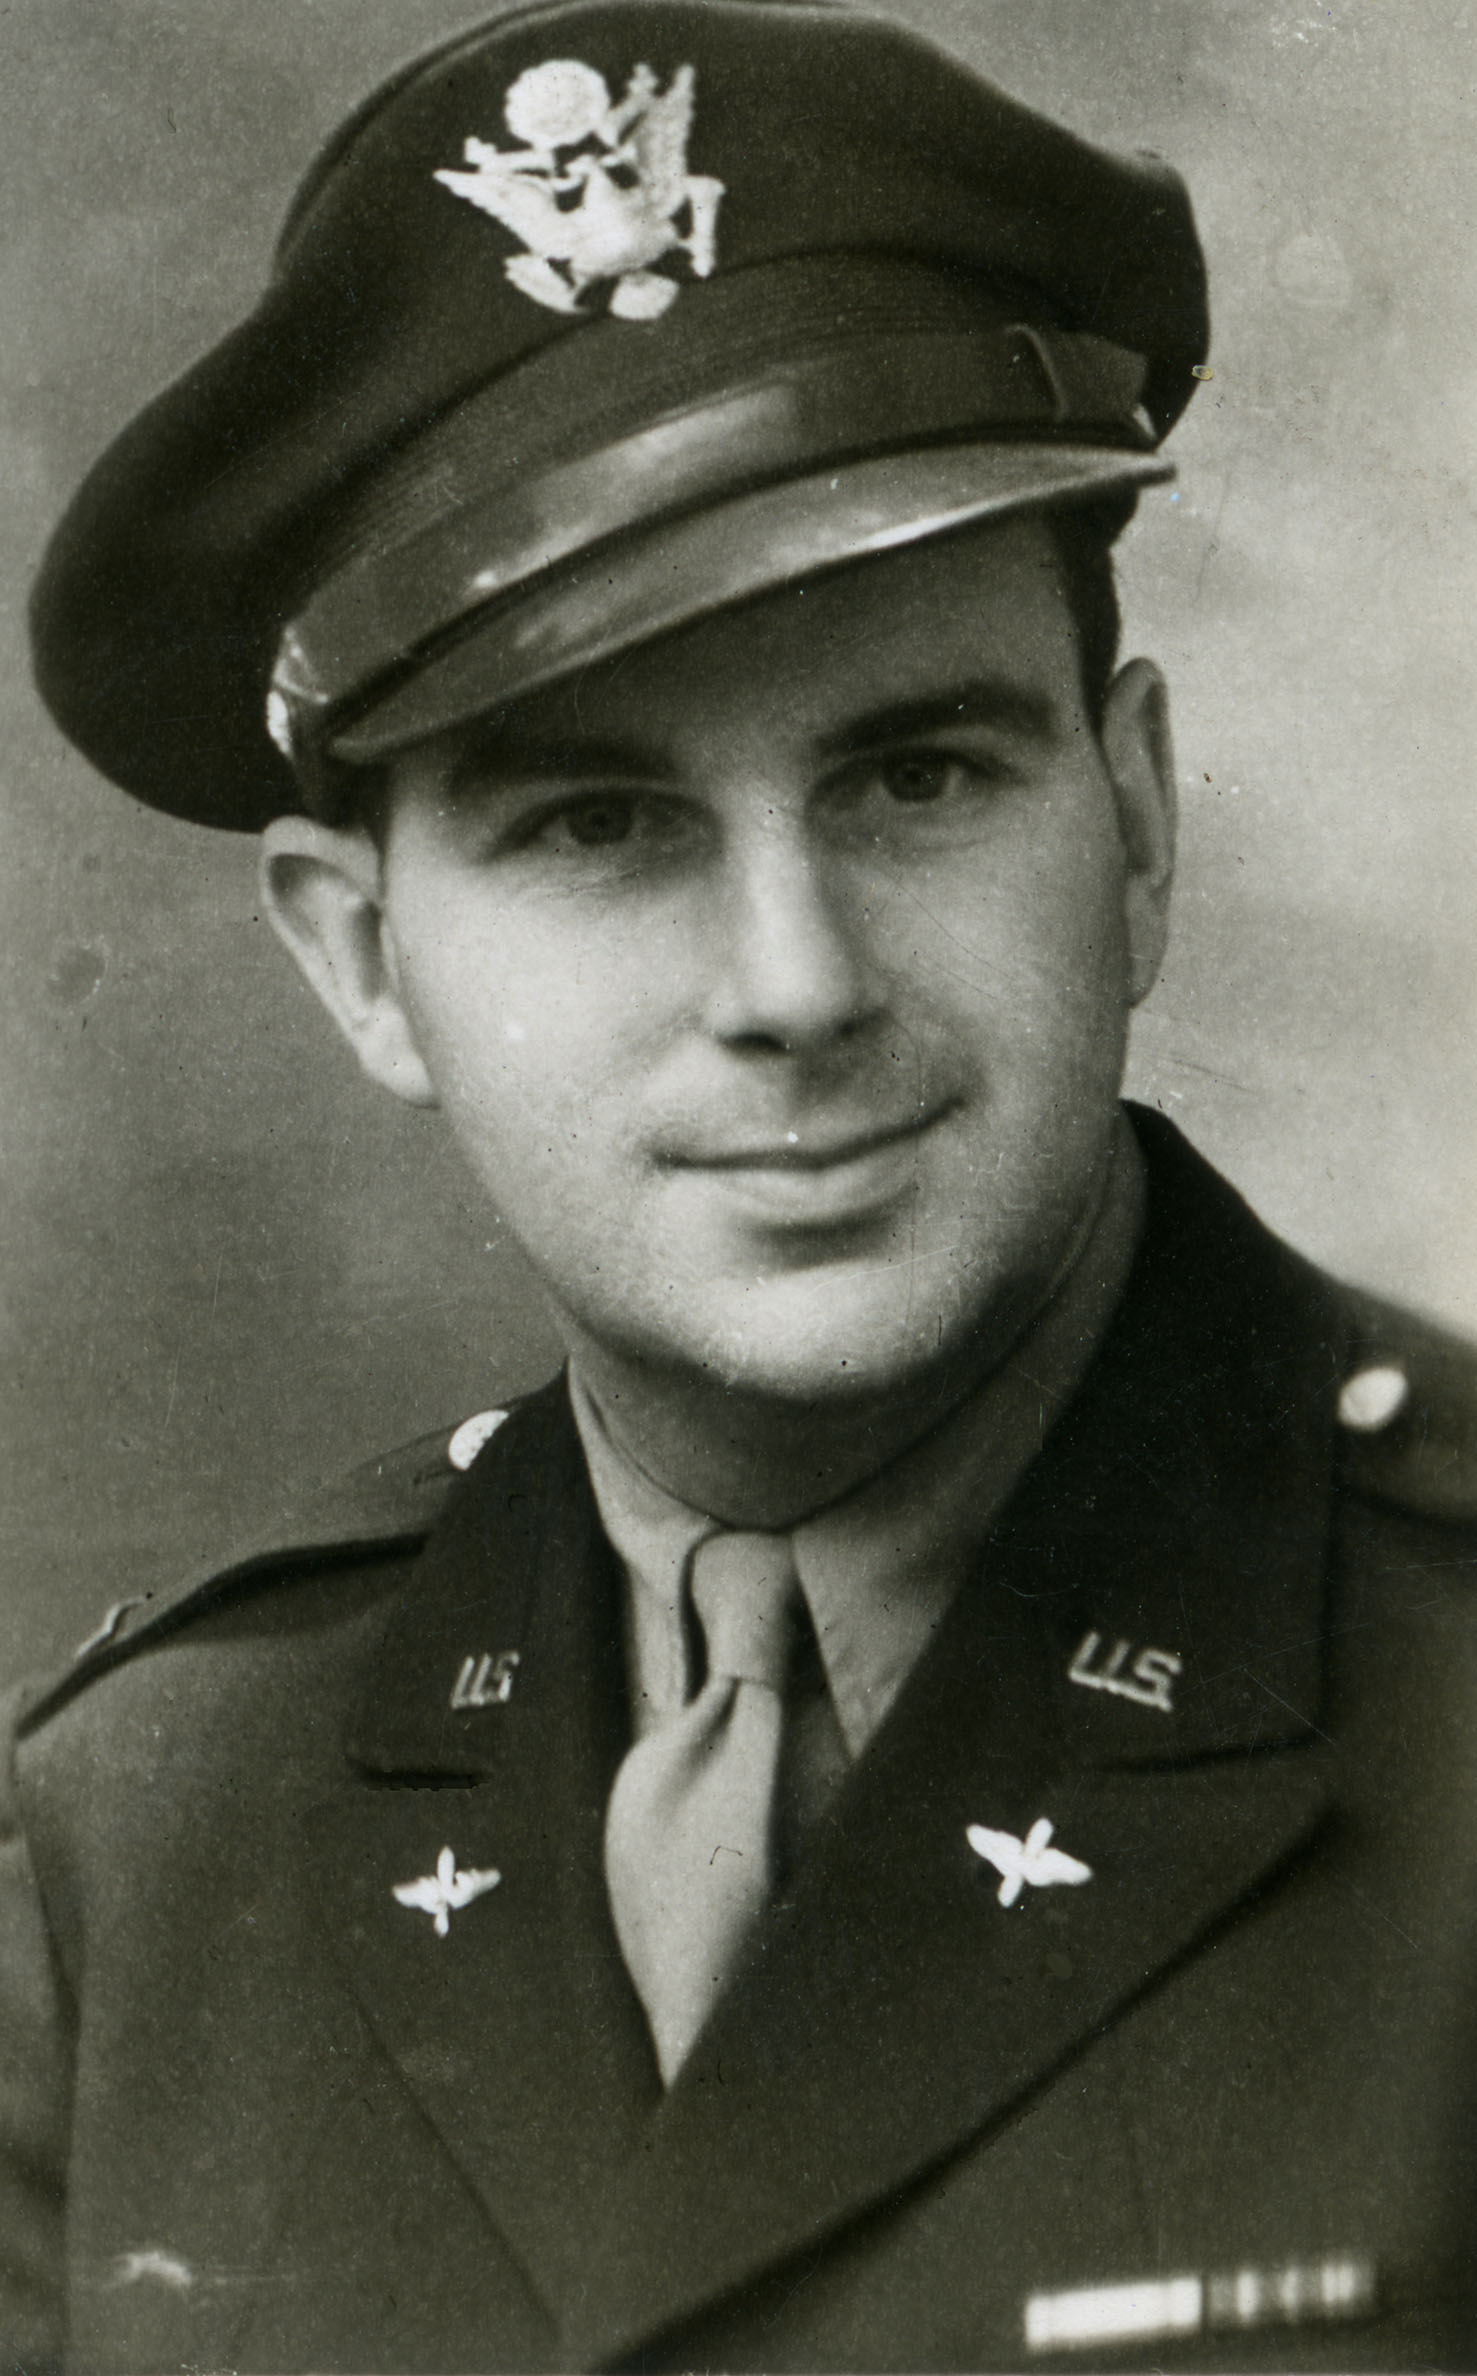 George Edward Reed headshot in uniform